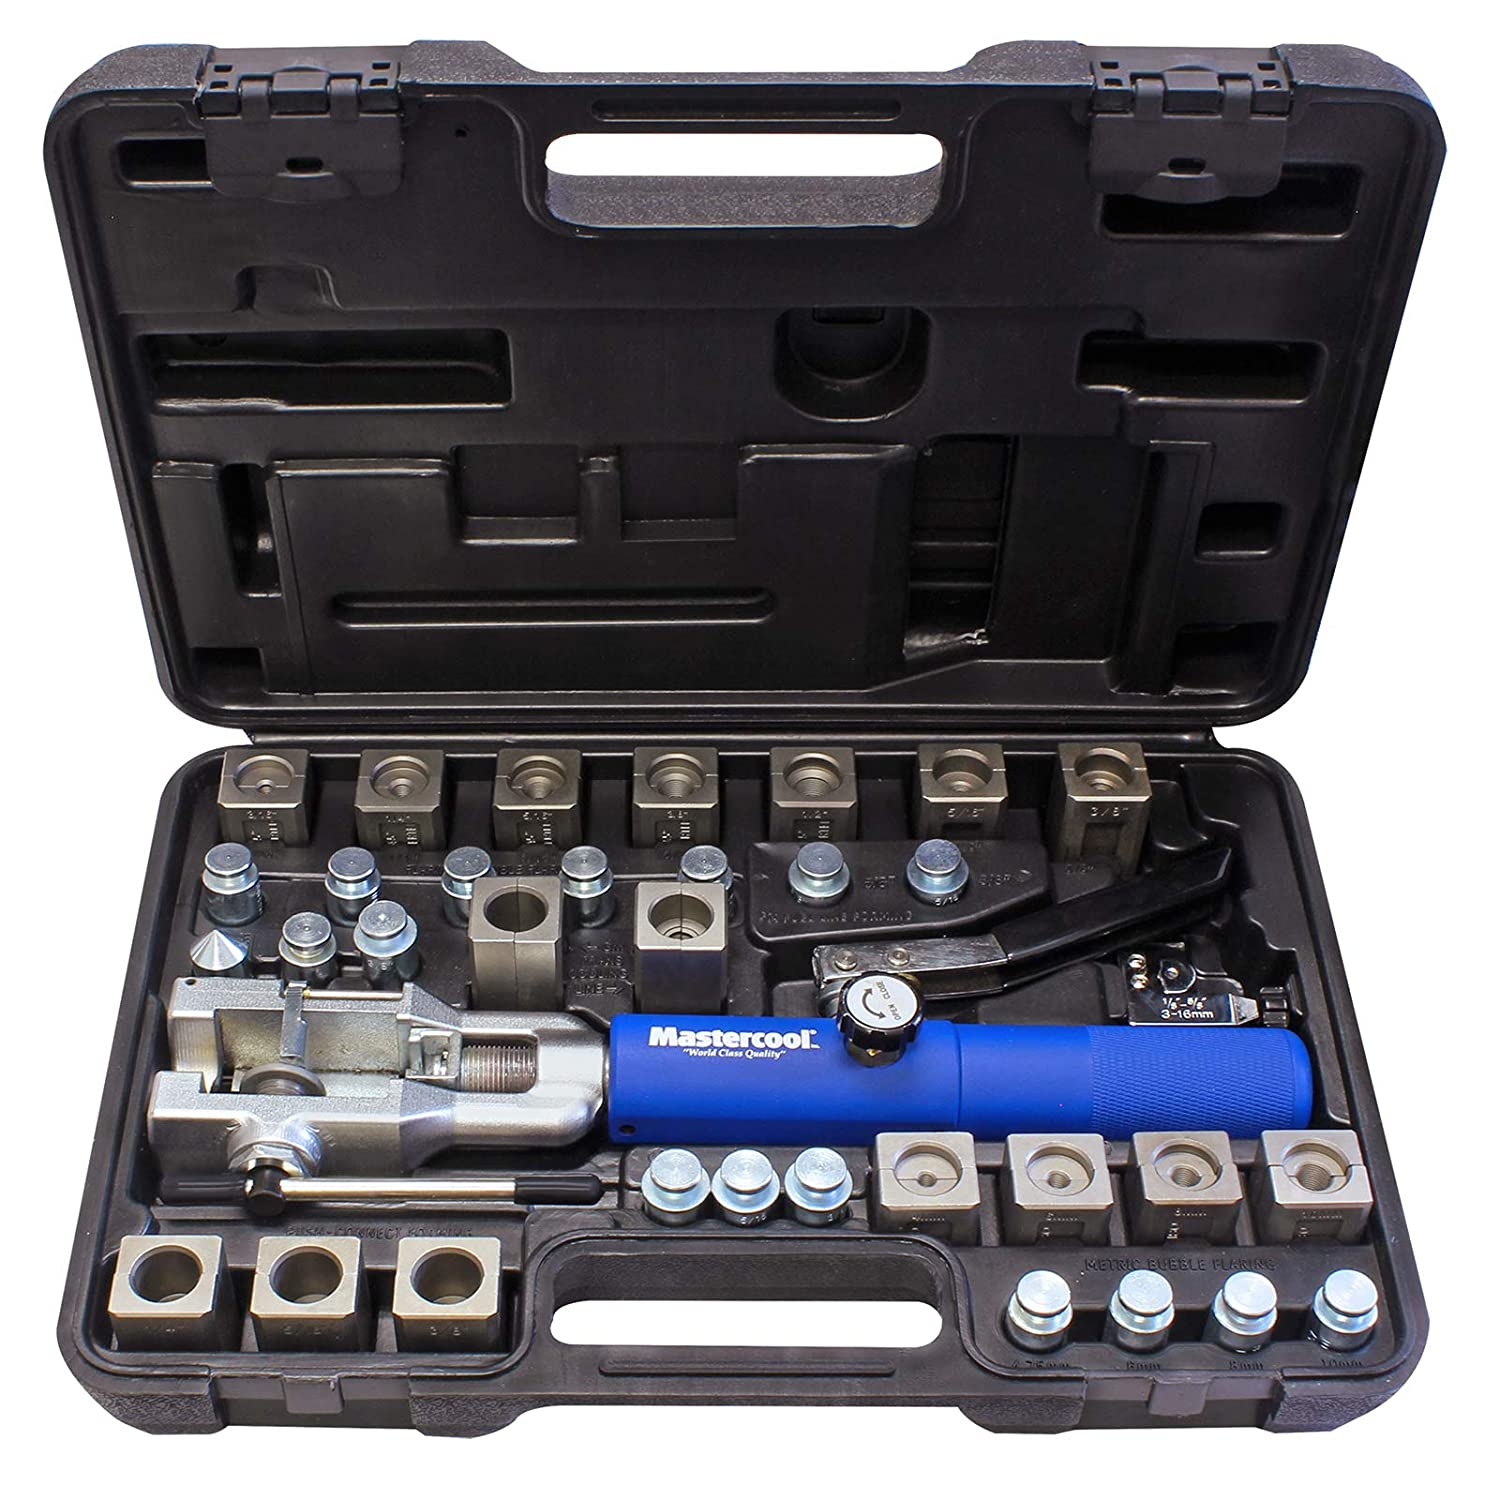 "MASTERCOOL 72485-PRC Silver/Blue Universal Hydraulic Flaring Tool (3/8""&1/2"" Transmission Cooling Line Die/Adapter Sets Plus Tube Cutter)"